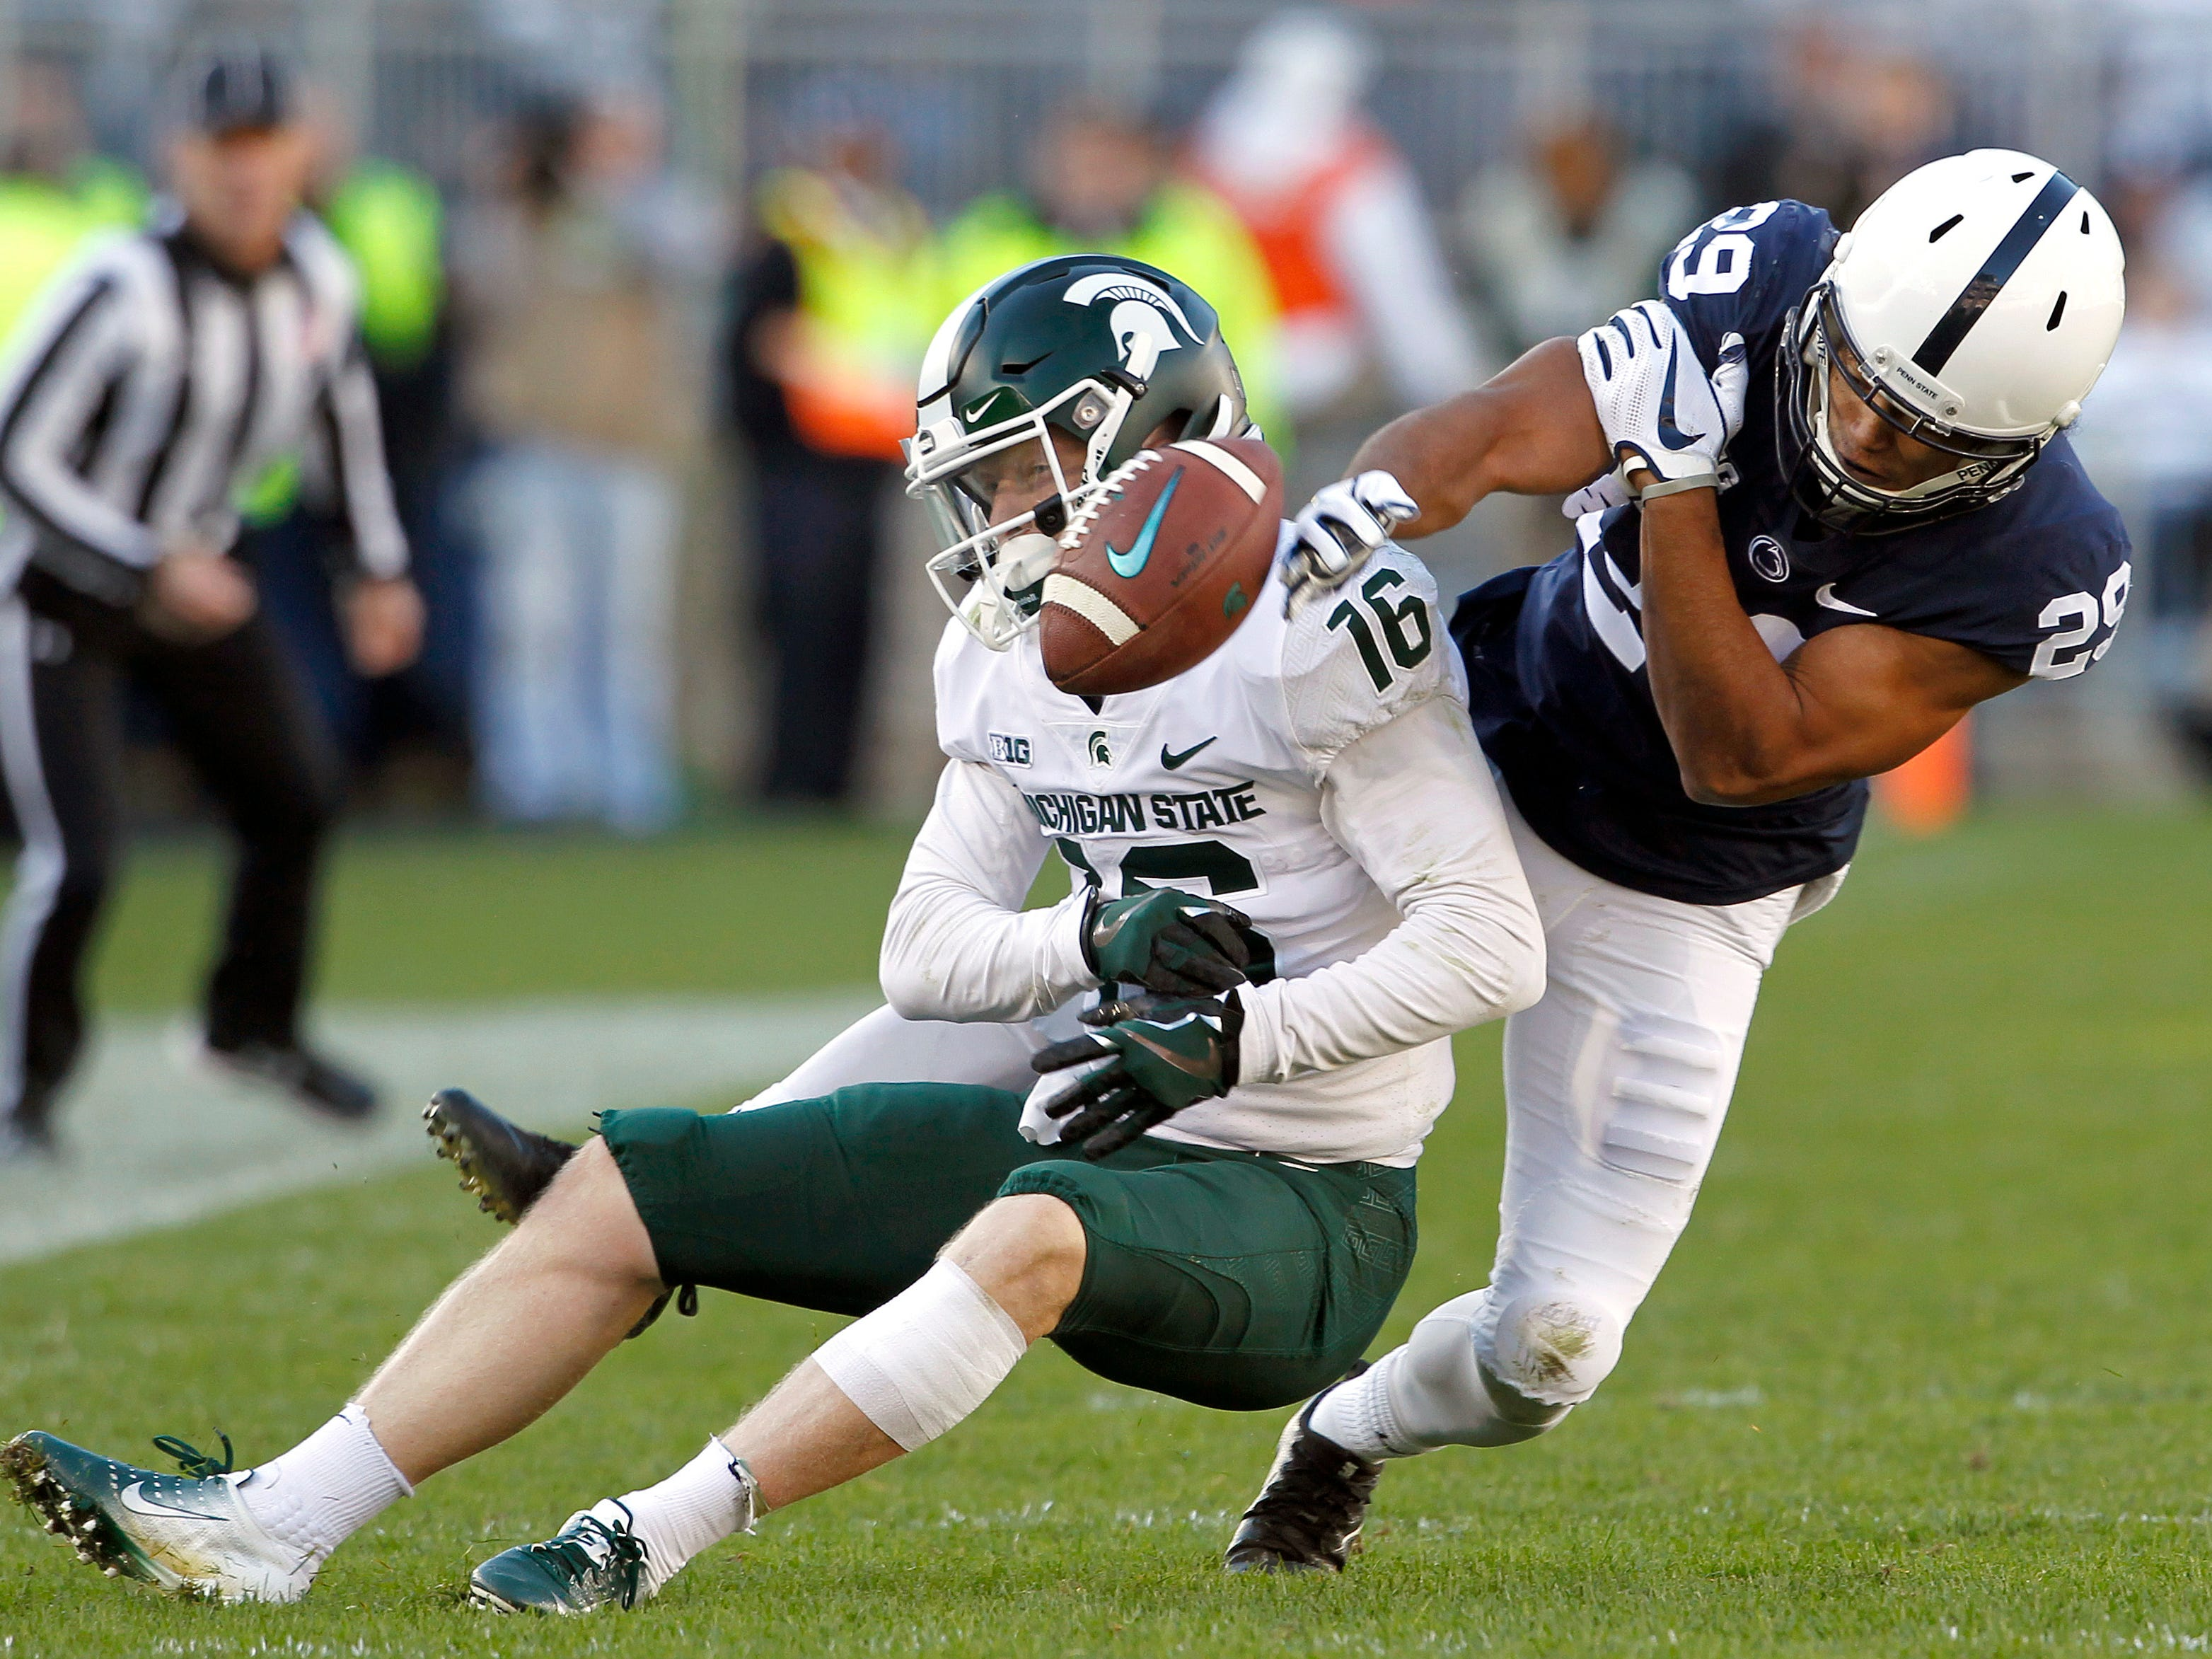 Penn State's John Reid (29) breaks up a pass intended for Michigan State's Brandon Sowards (16) during the first half of an NCAA college football game in State College, Pa., Saturday, Oct. 13, 2018.